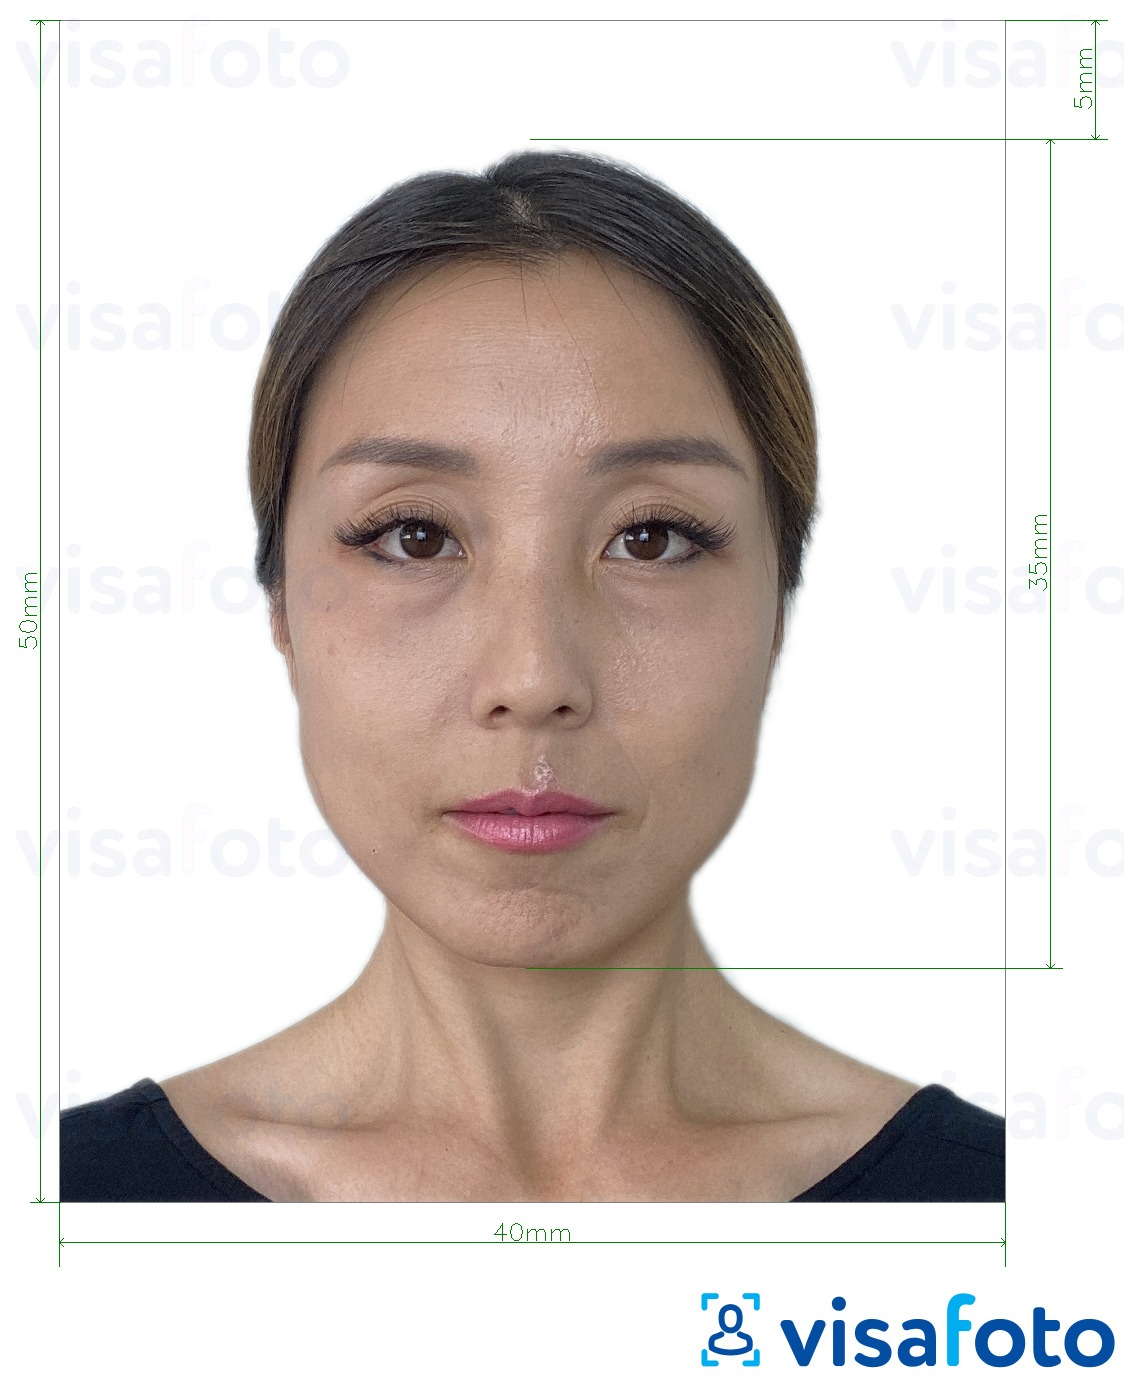 Example of photo for Hong Kong Passport 40x50 mm (4x5 cm) with exact size specification